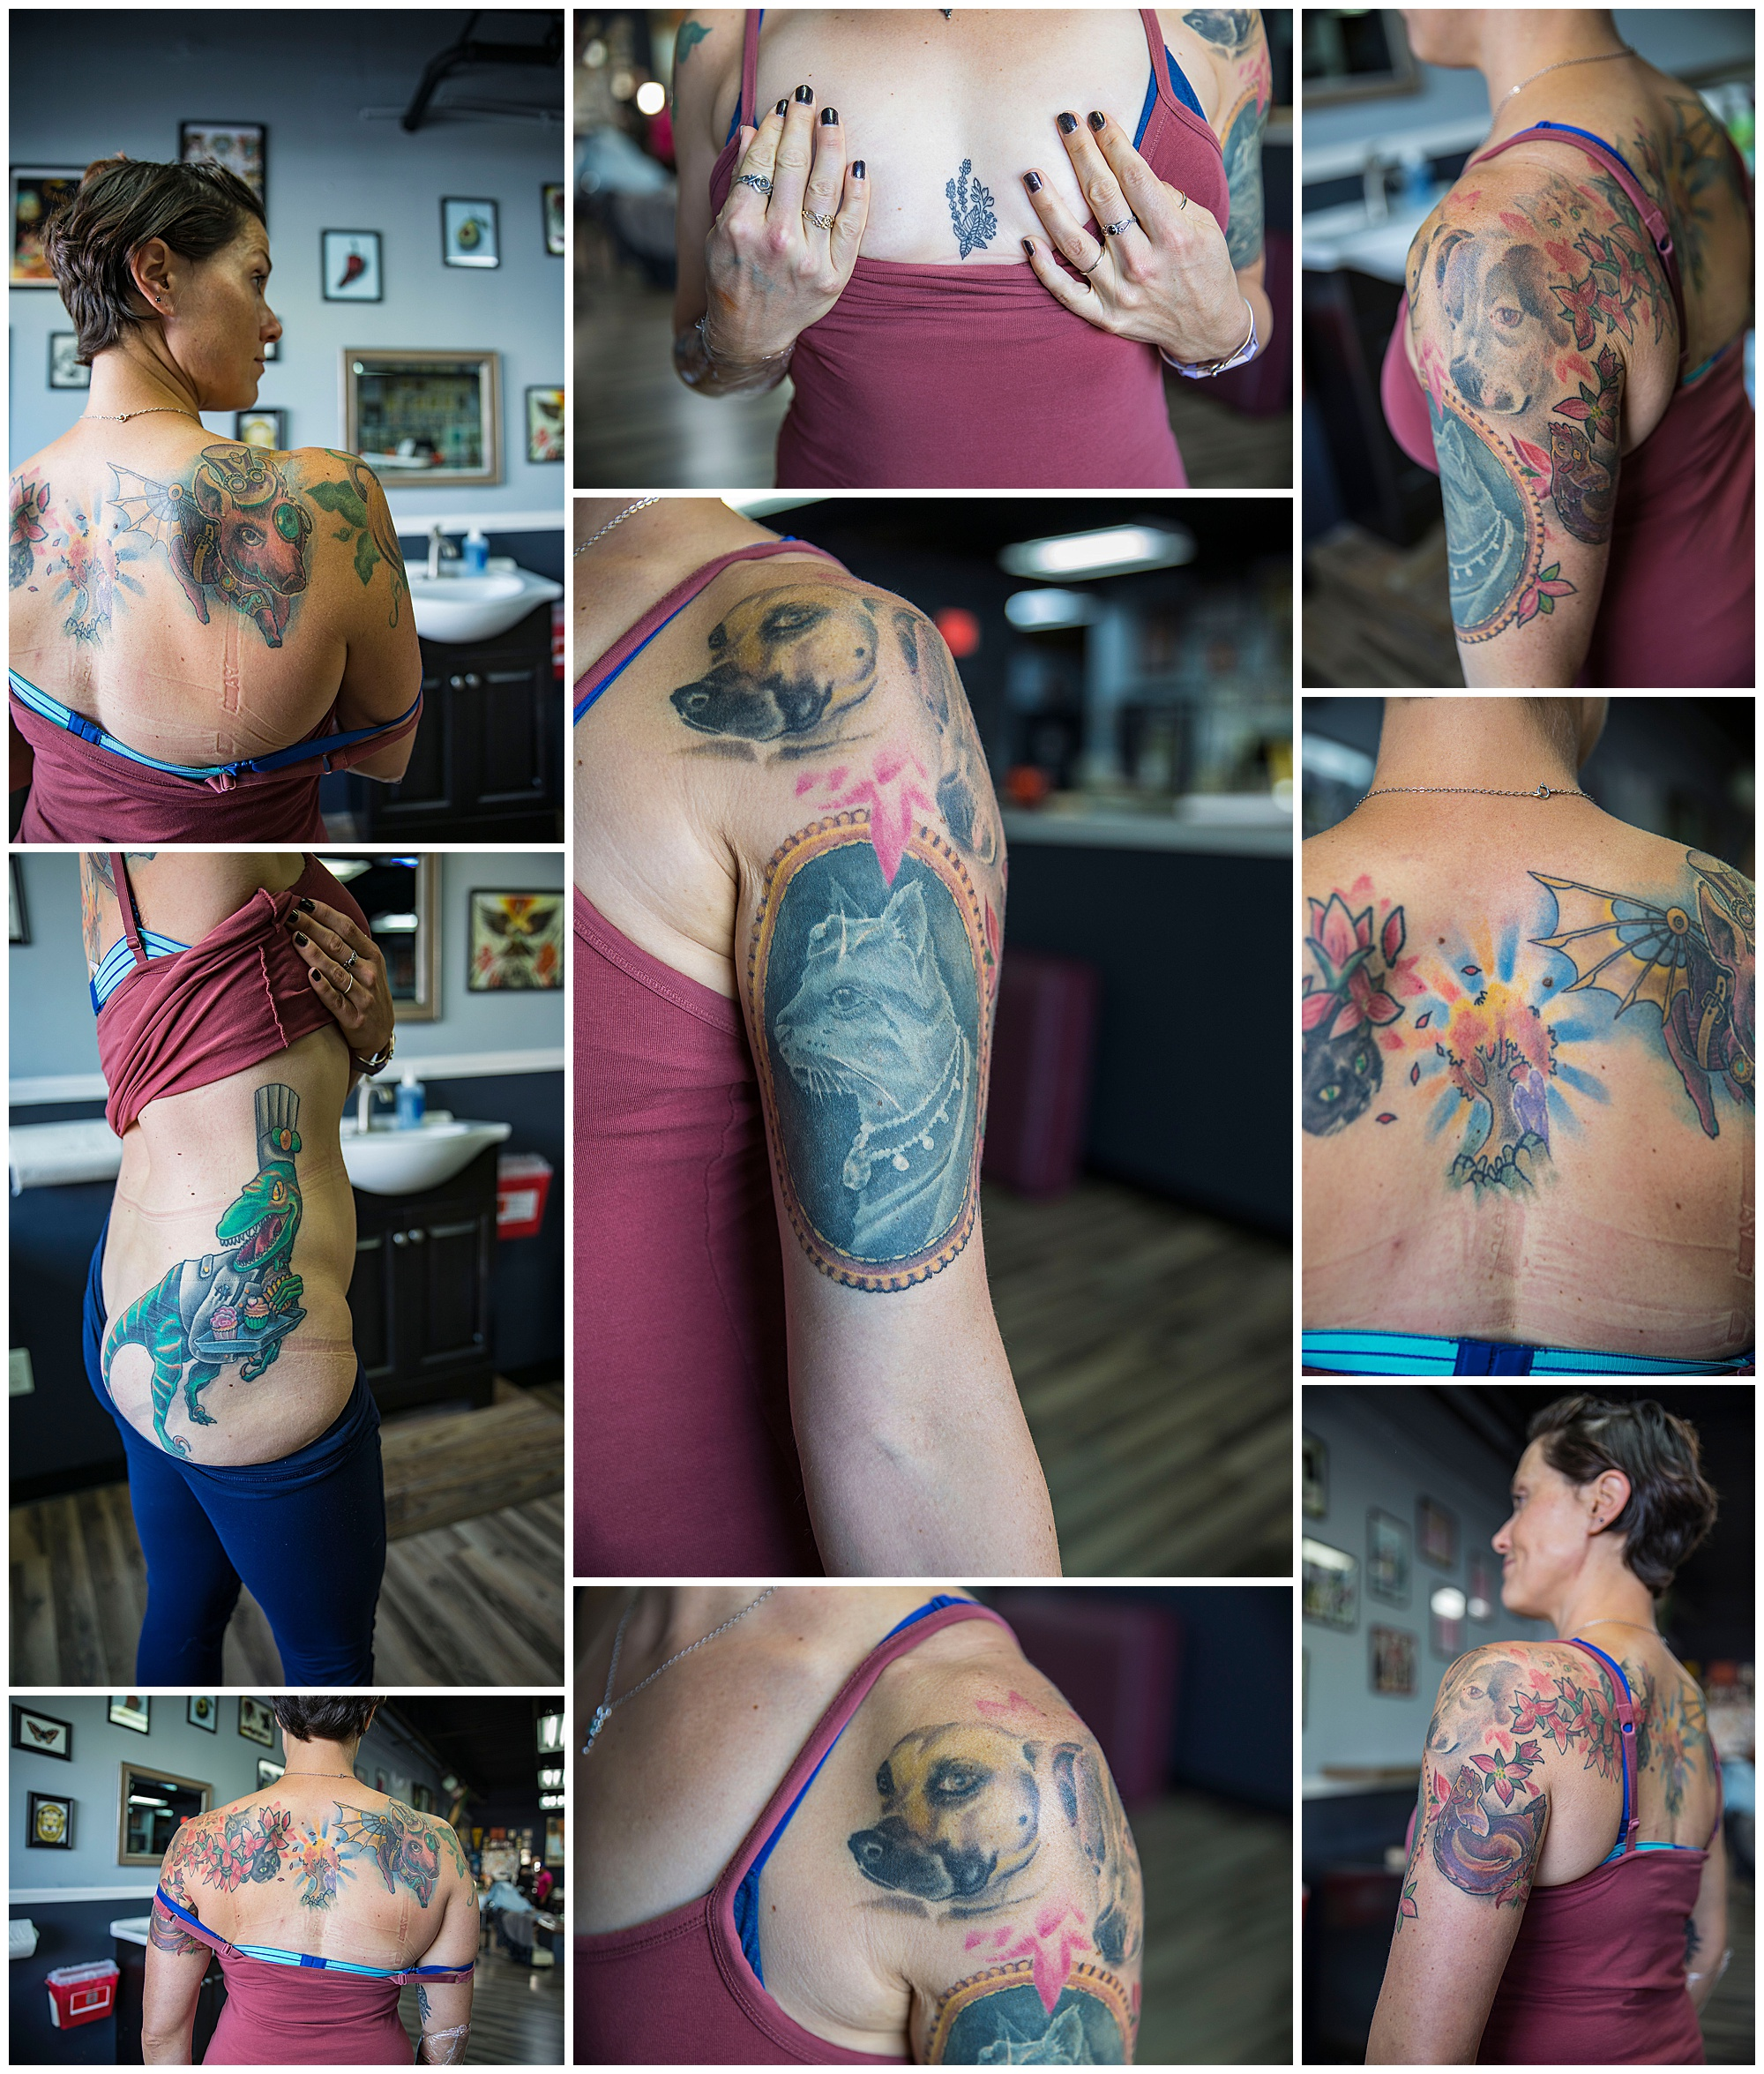 sierra sunshine, norfolk tattoo artist, tattoo artists in norfolk virginia, great tattoos in hampton roads